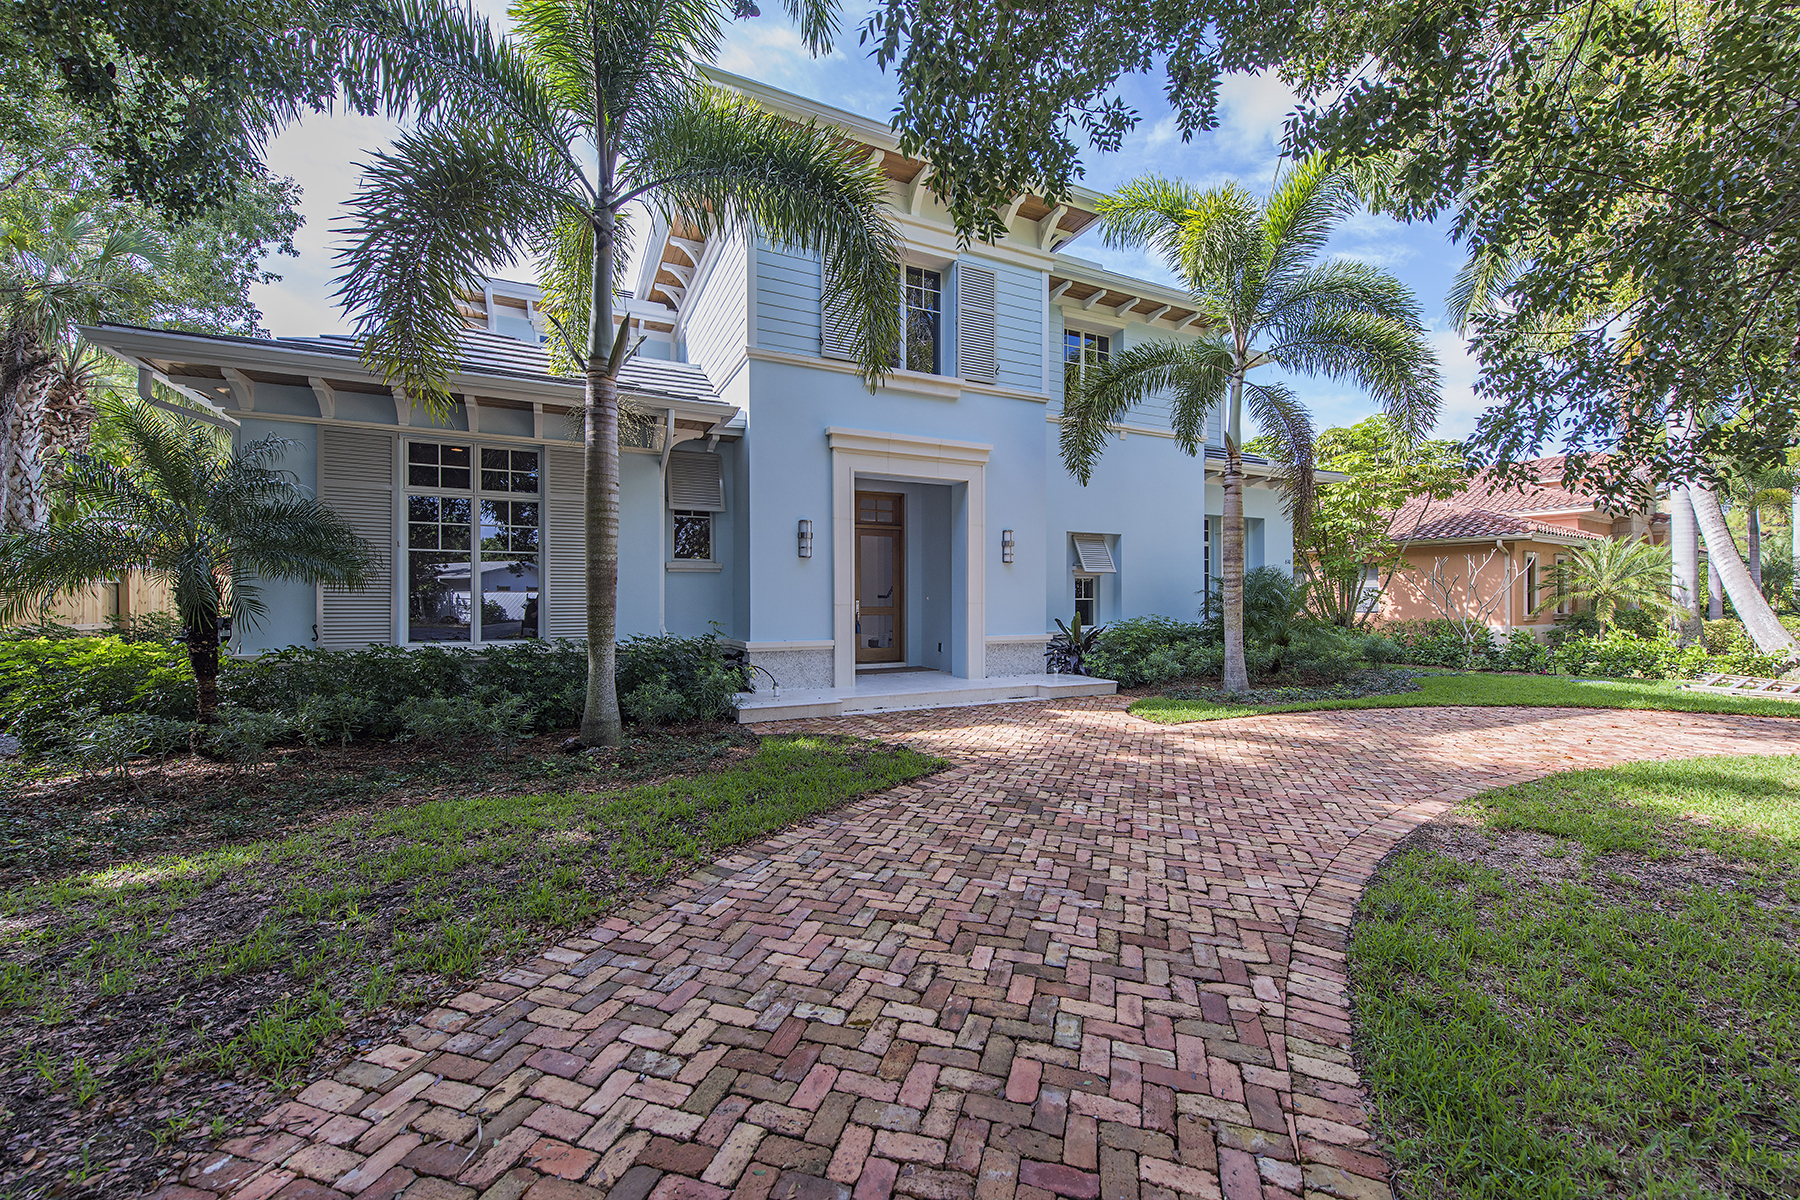 Single Family Home for Sale at Olde Naples 610 6th Ave N, Naples, Florida 34102 United States